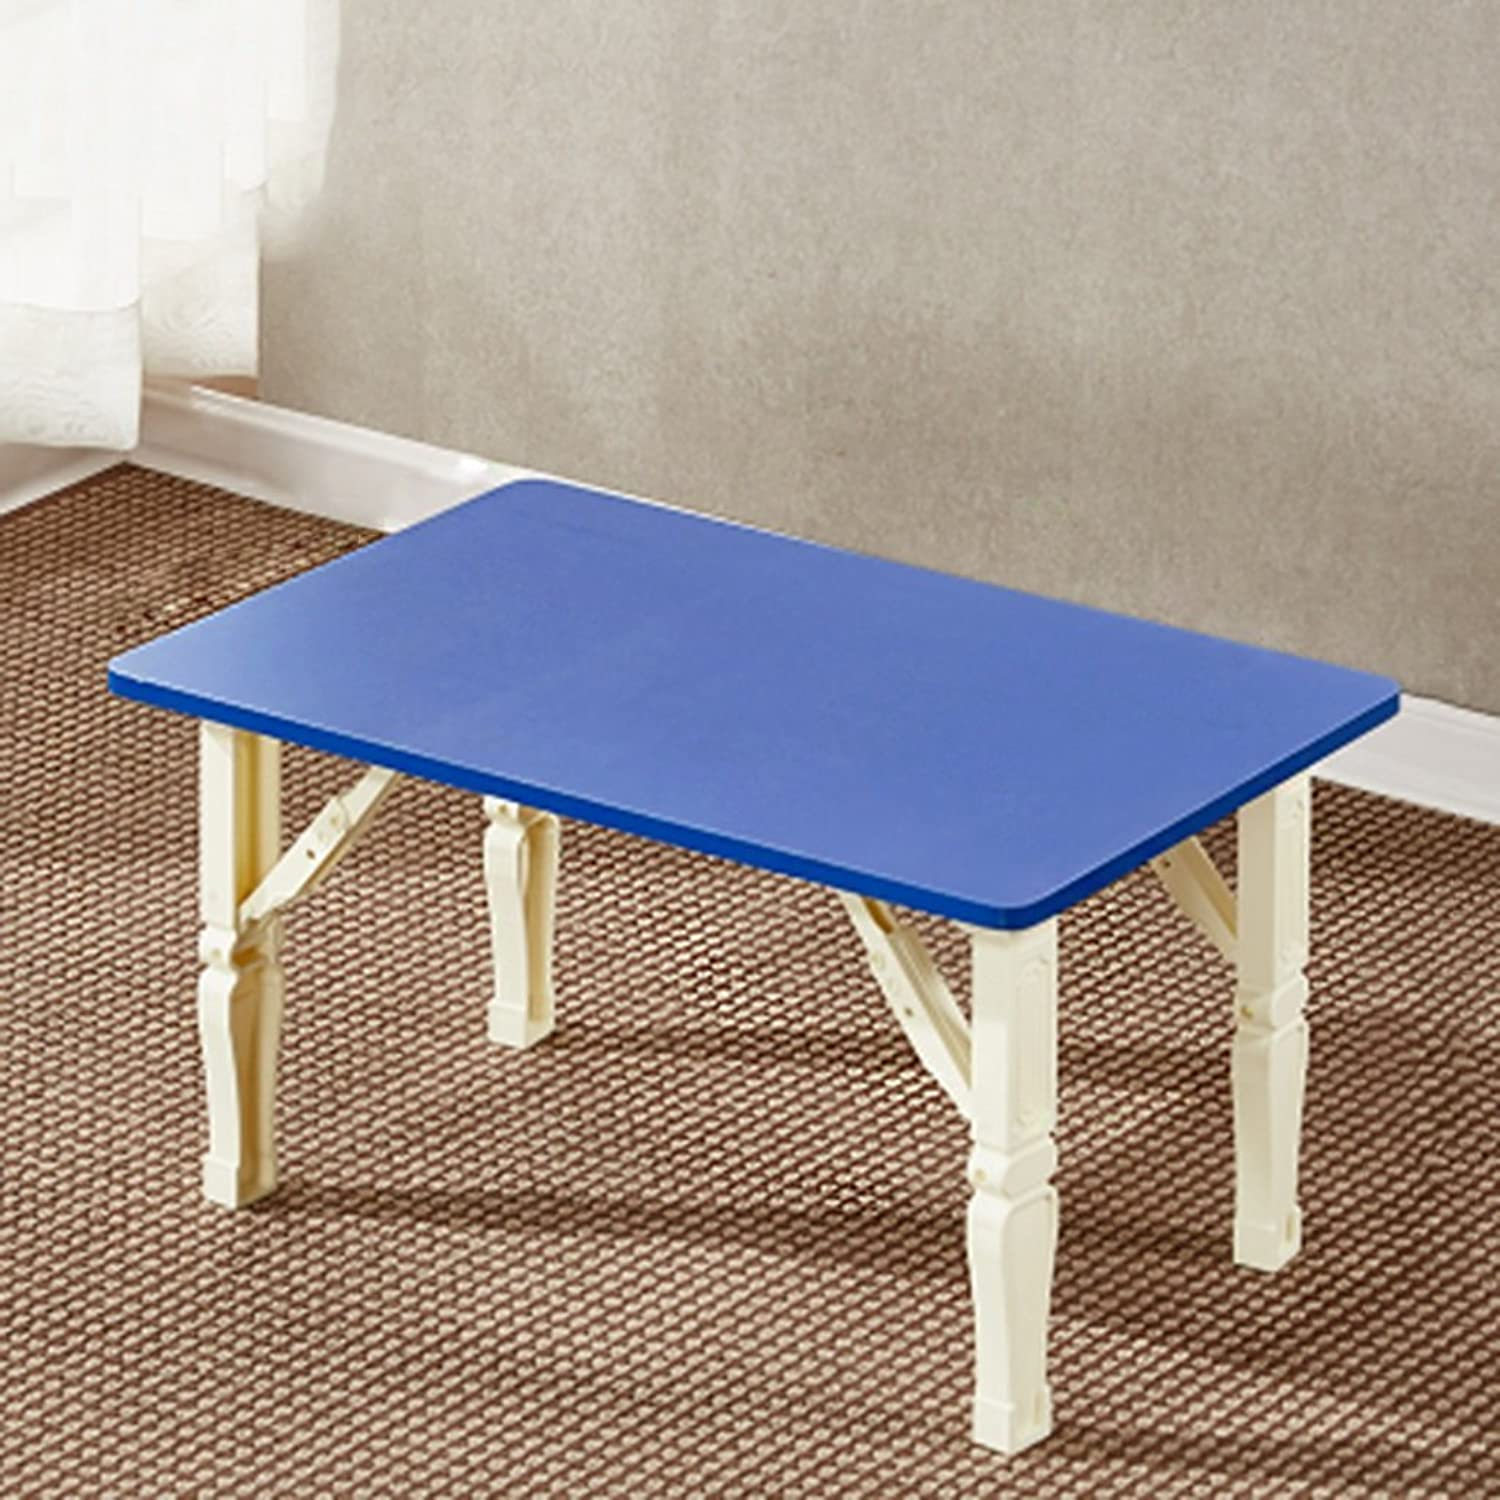 Chuangshengnet Laptop Table Collapsible Lazy Dormitory Desk Shelf (color   bluee)